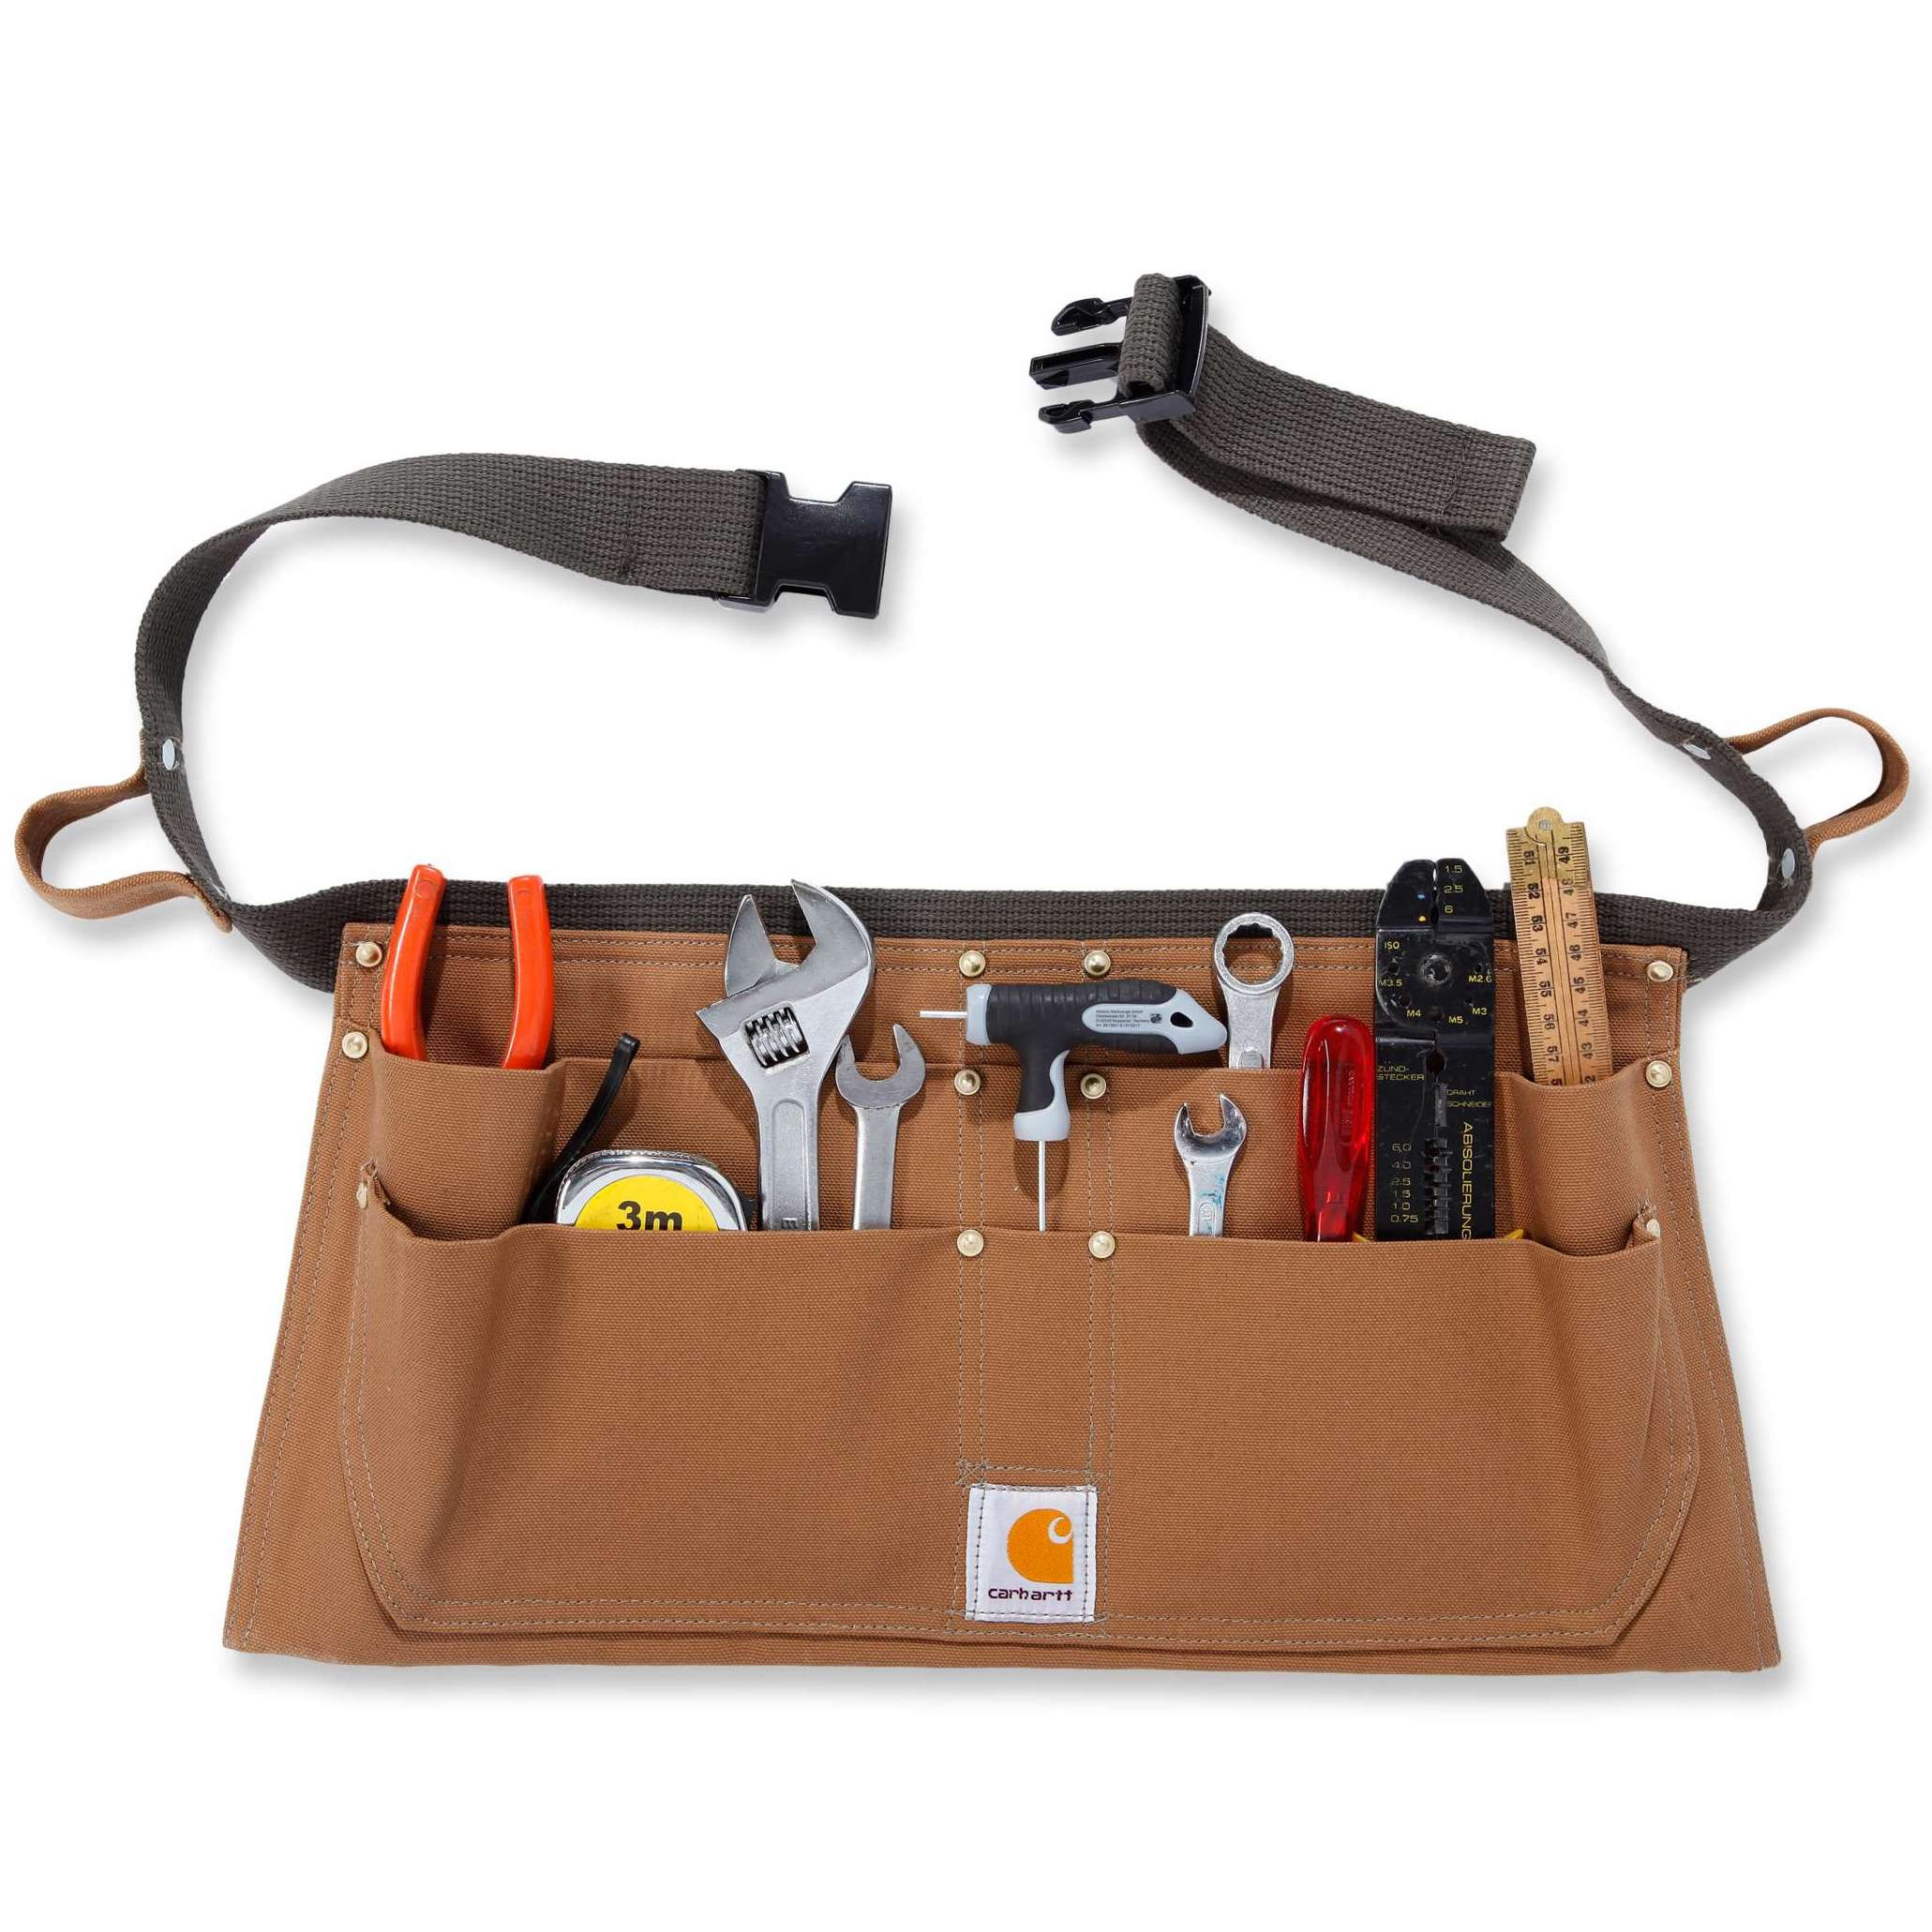 Ремень для инструментов Carhartt  Duck Tool Belt - A09 (Carhartt Brown, S-M)